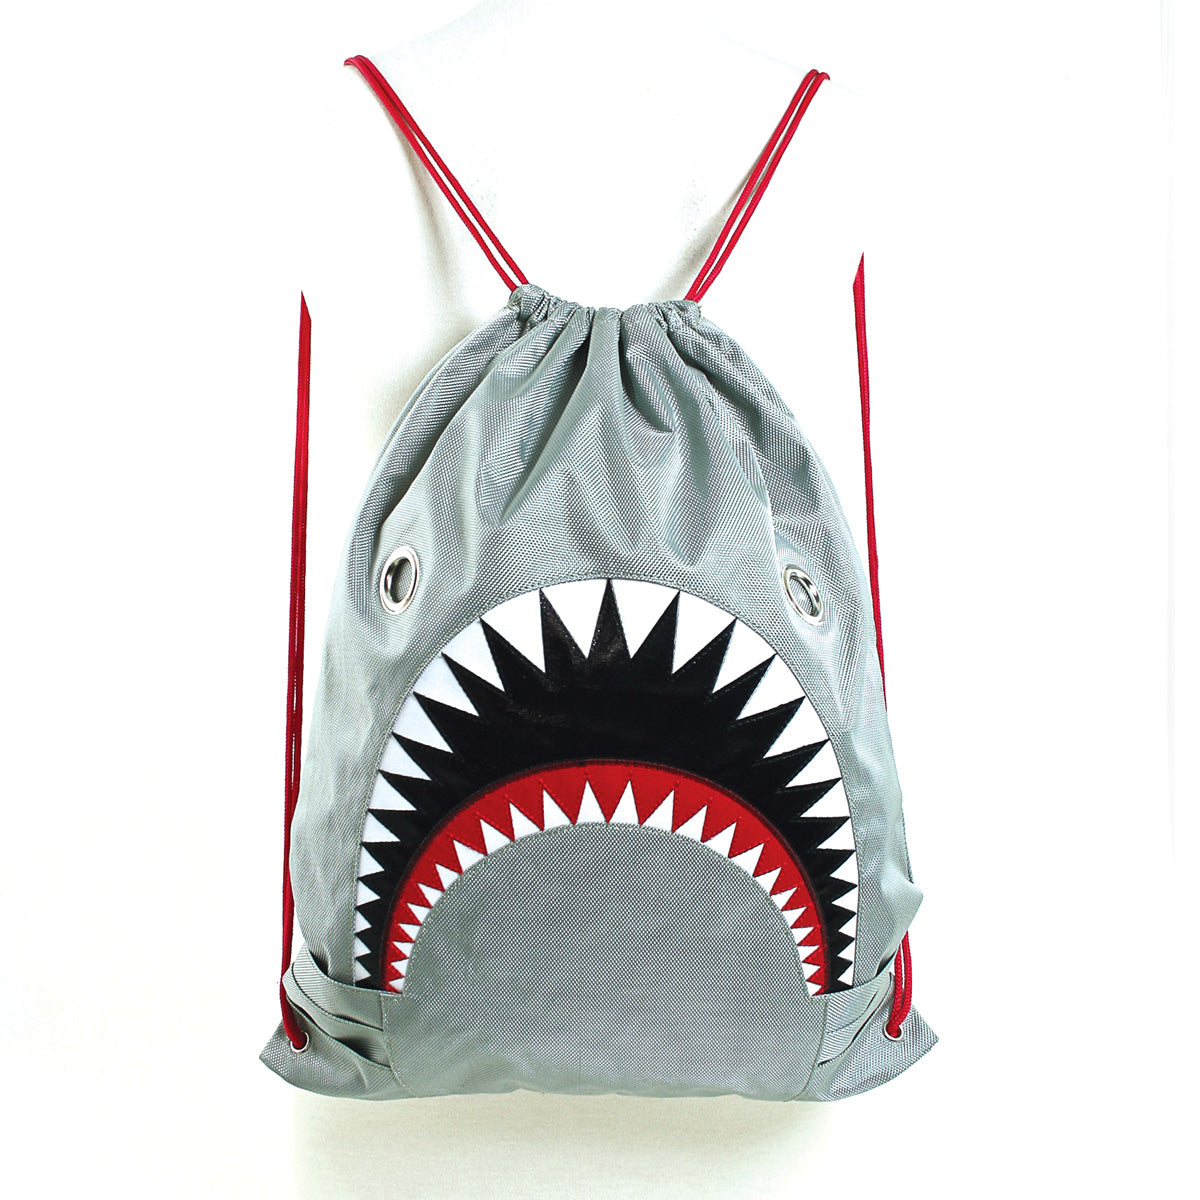 Unisex Water Resistant Nylon Shark Bite Jaws Drawstring Knap Sack Back Pack (Grey) front view